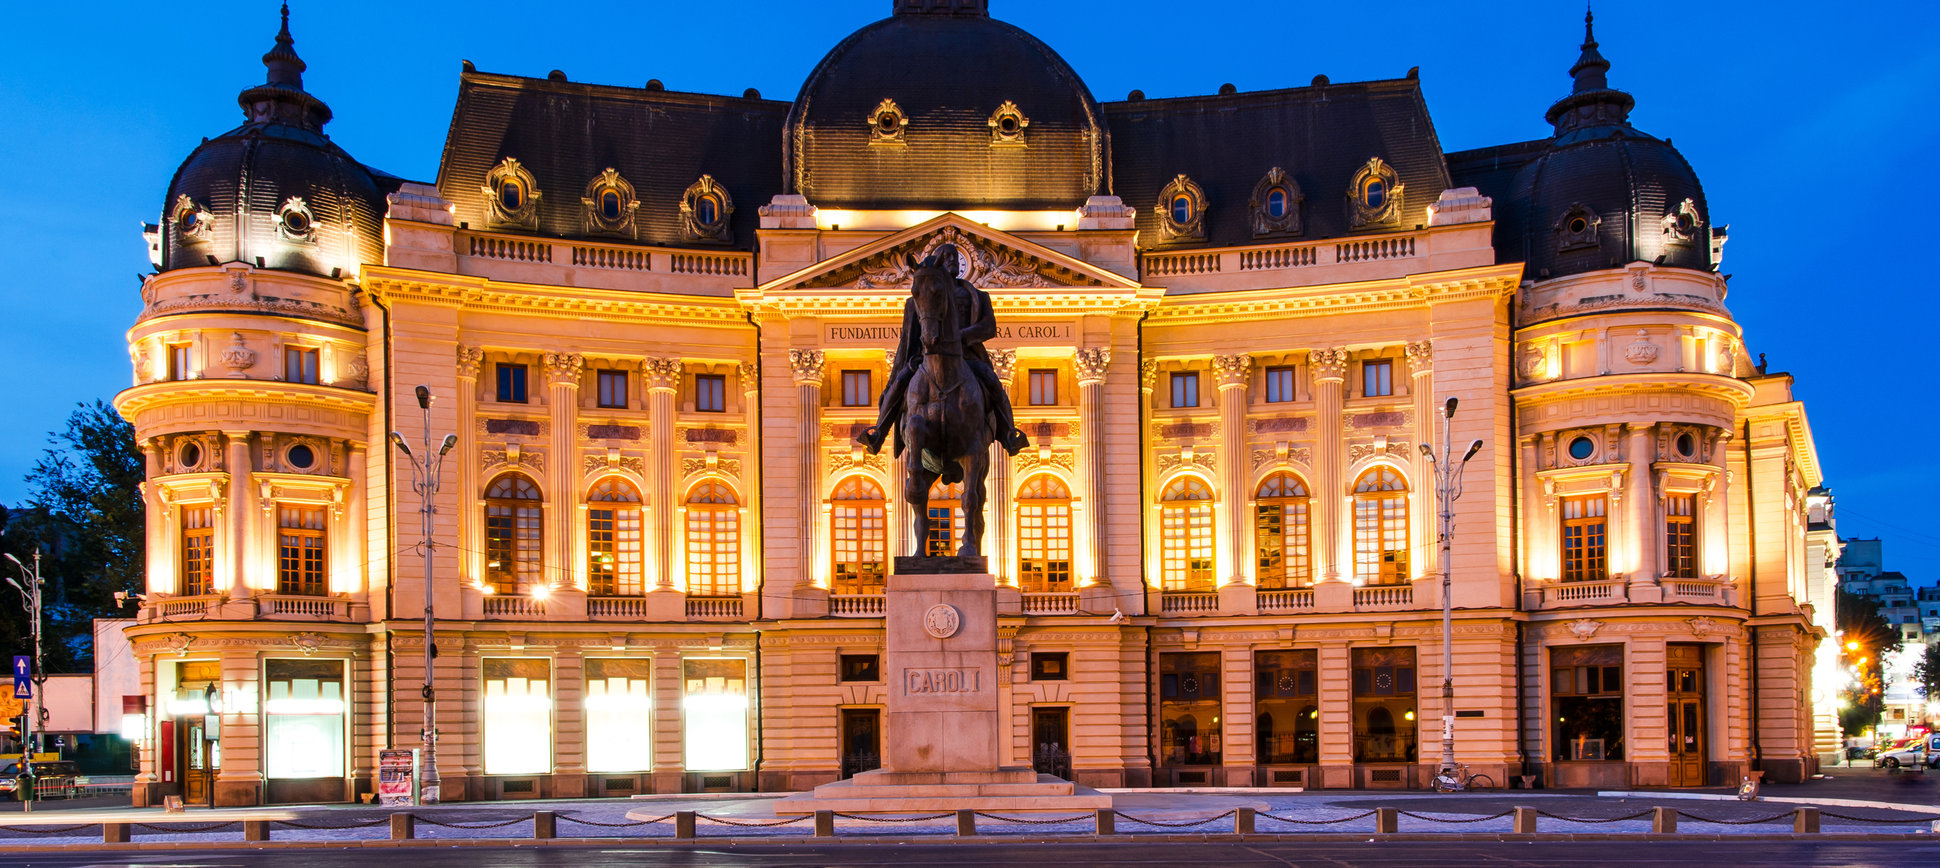 The 10 cheapest european cities to stay in a five star hotel for Five star hotel